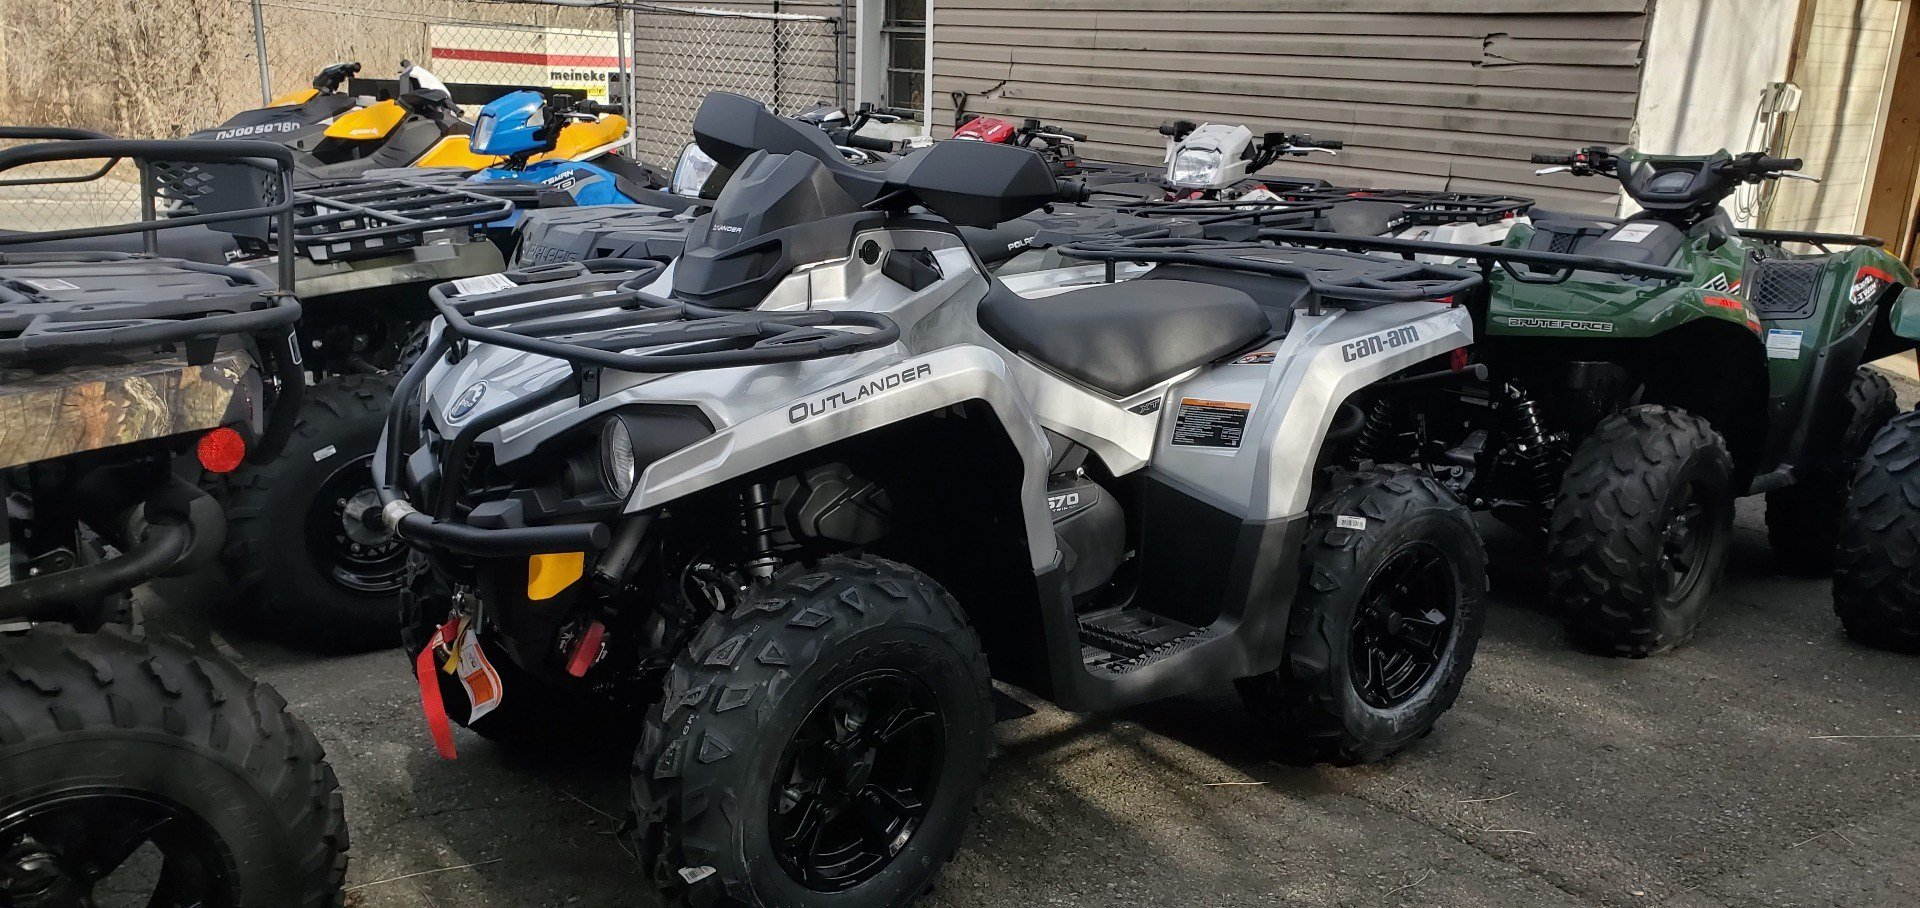 2019 Can-Am Outlander XT 570 for sale 1258